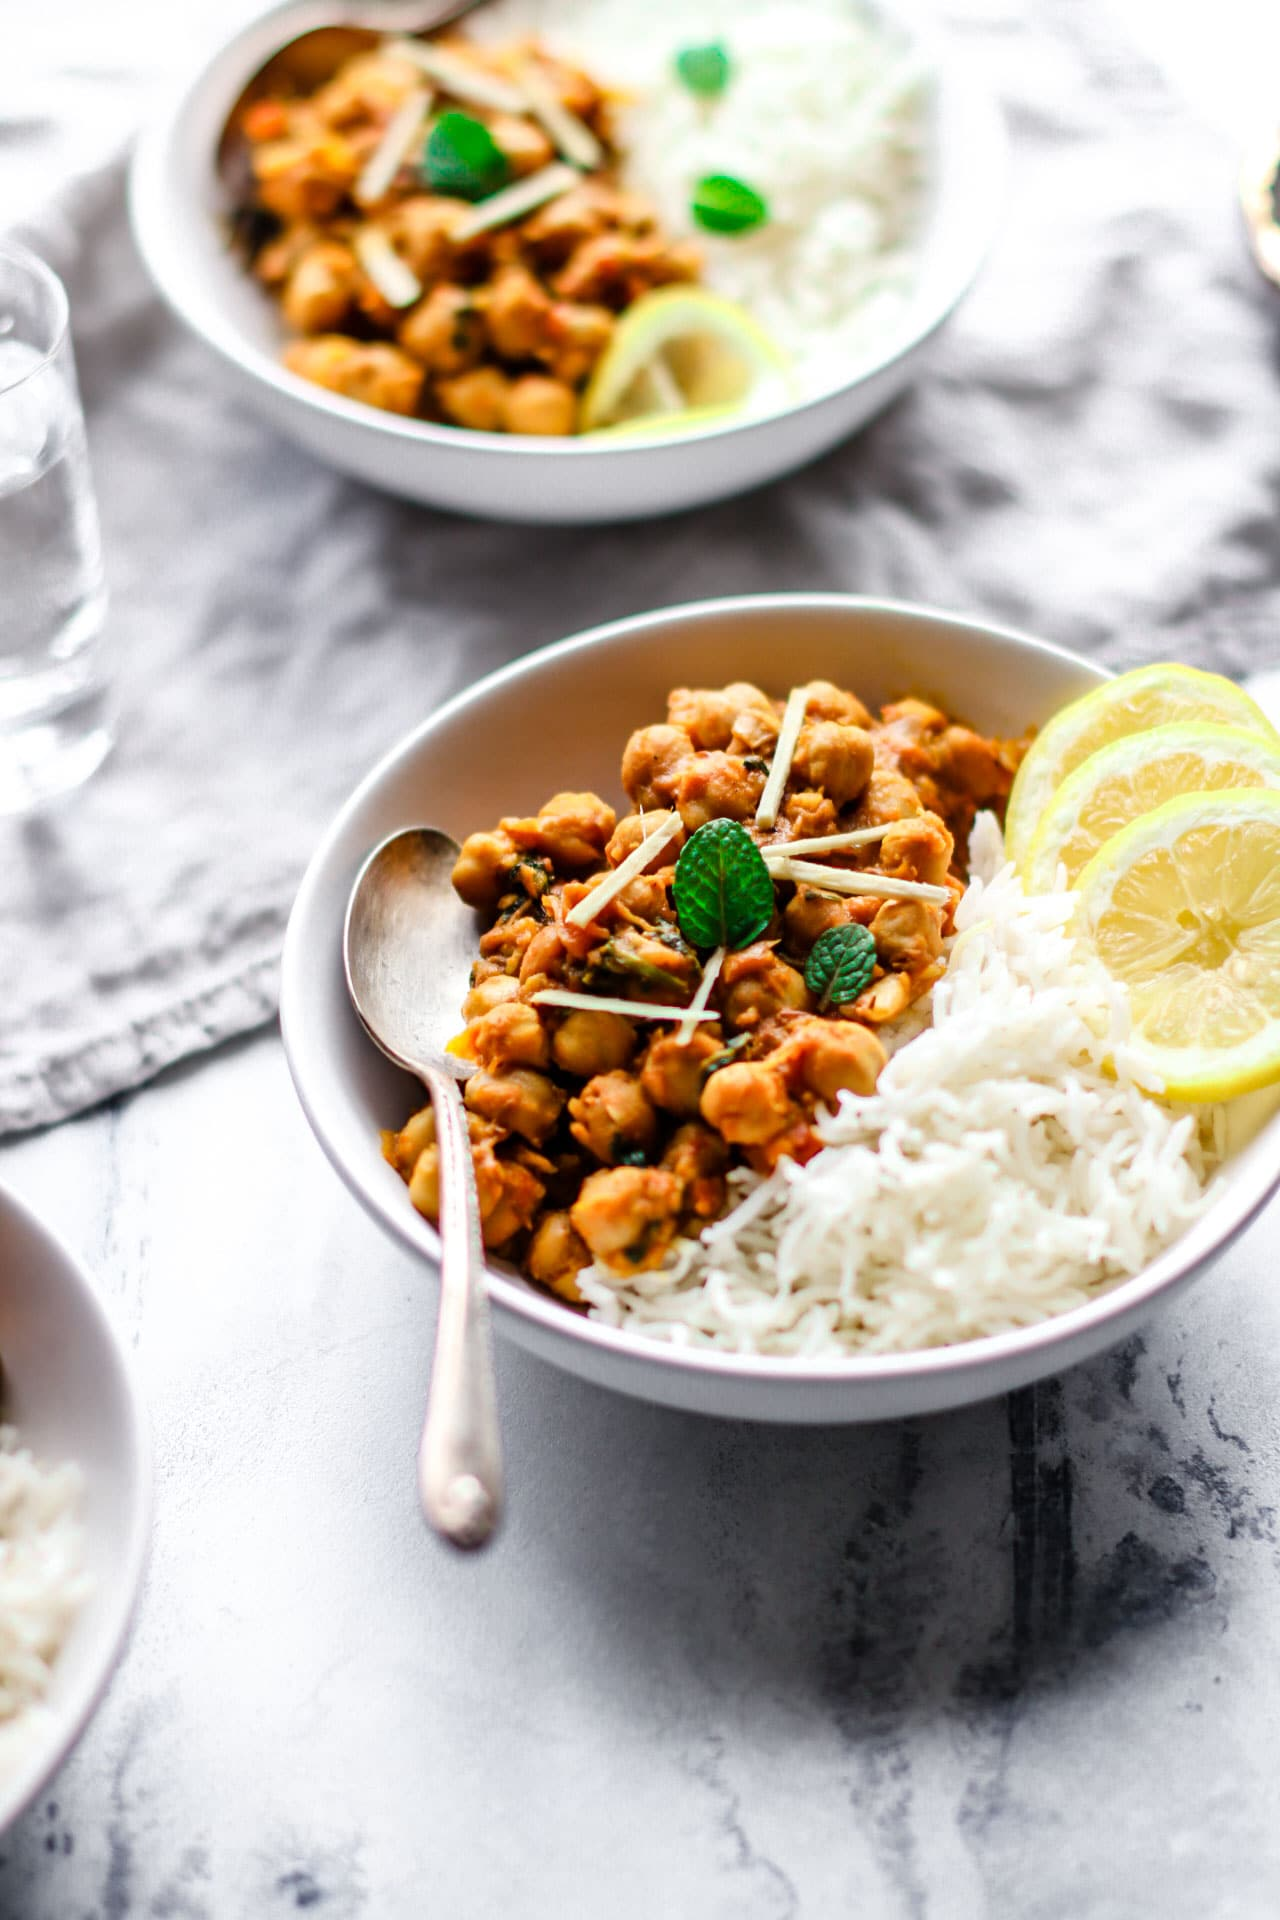 A white bowl with chana masala, rice, and lemon with a silver spoon inside.